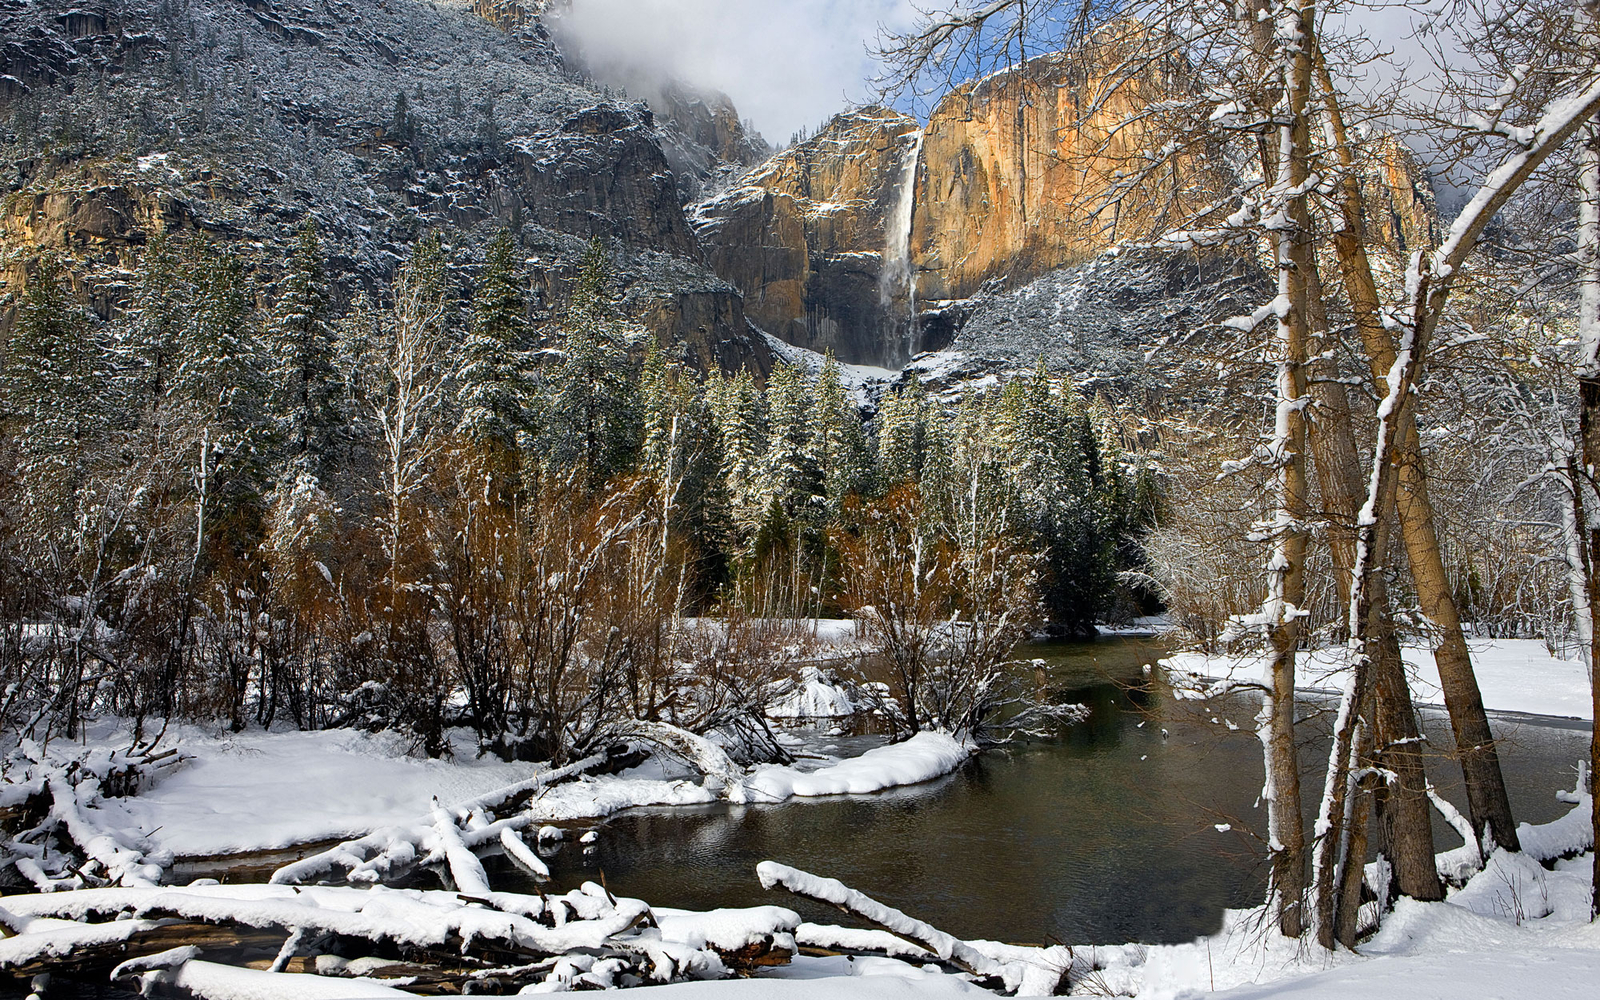 201312-w-americas-top-winter-drives-yosemite-national-park